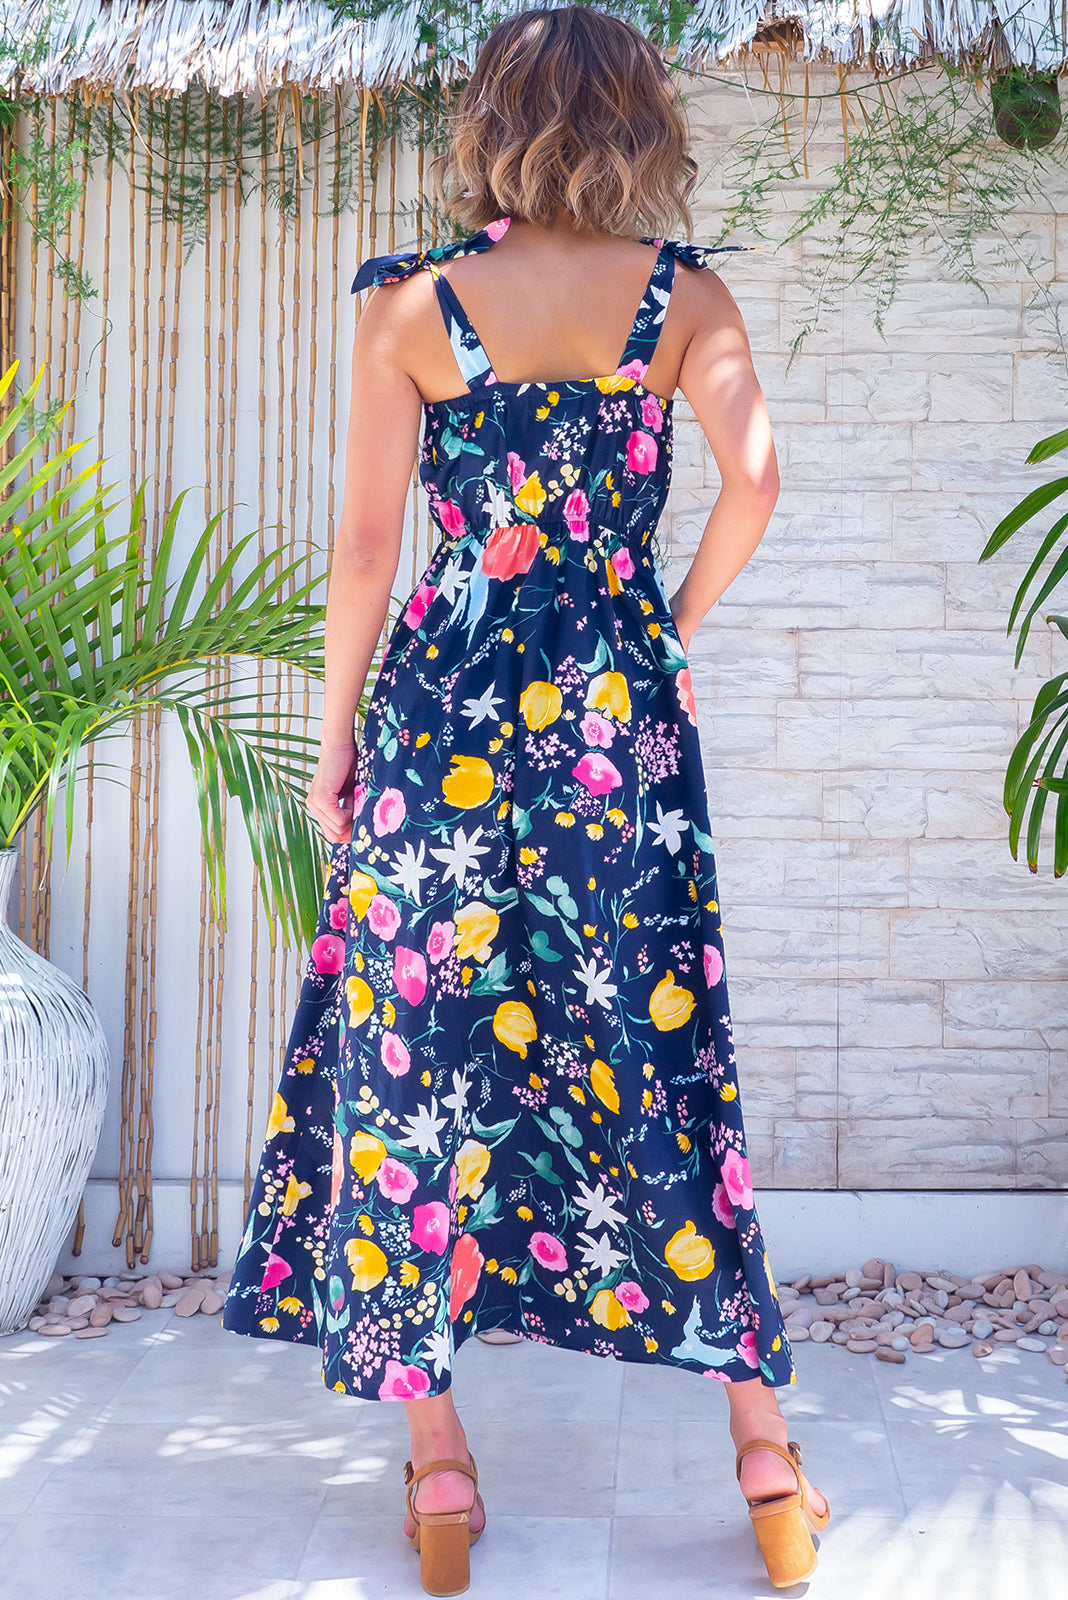 The Midsummer Emilia's garden Dress features straight neckline, tie up shoulder straps, functional shell button front, side pockets, elasticated waist back and woven 100% cotton poplin in navy base with bright, retro floral print.